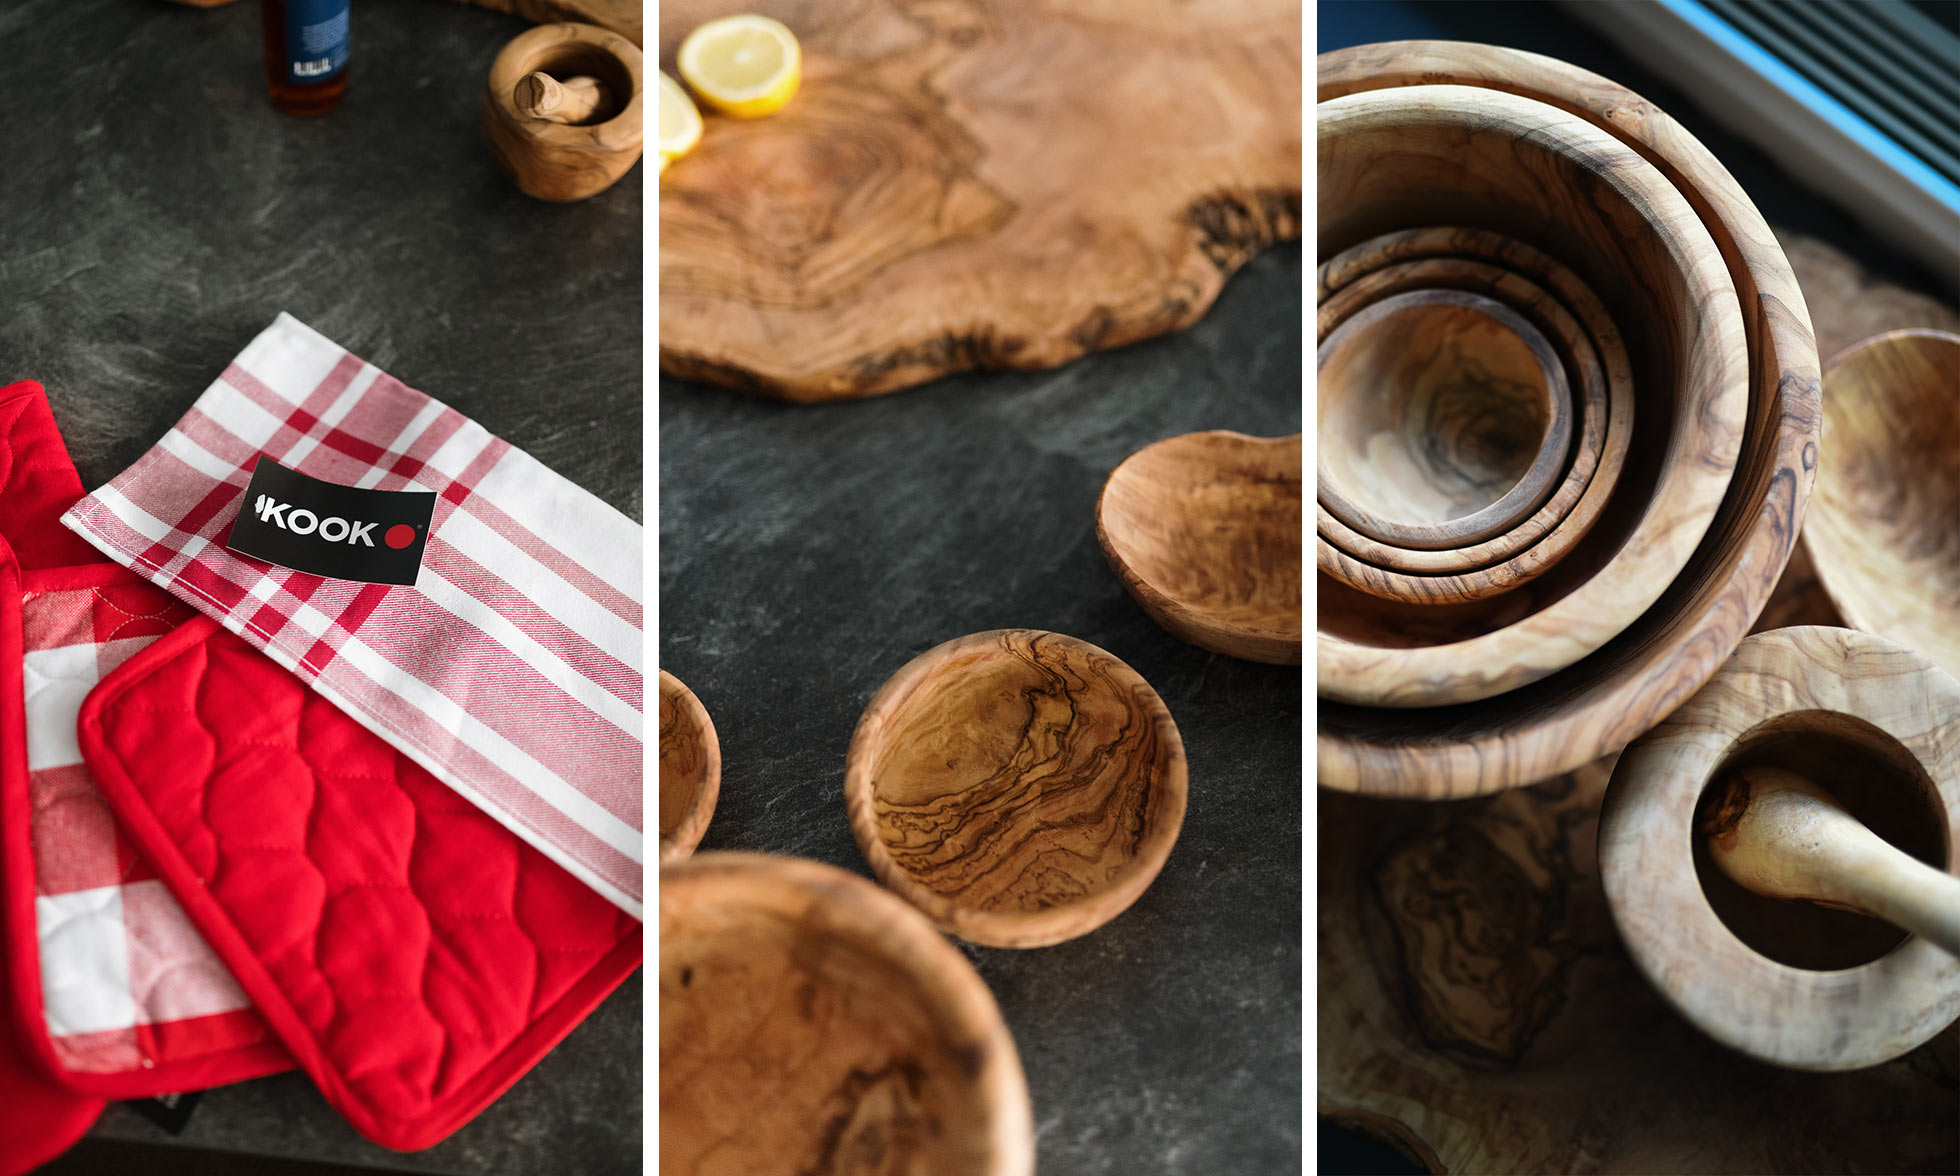 Left: red and white pot holders. Centre: wooden cutting board and bowls. Right: stacked wooden bowls.